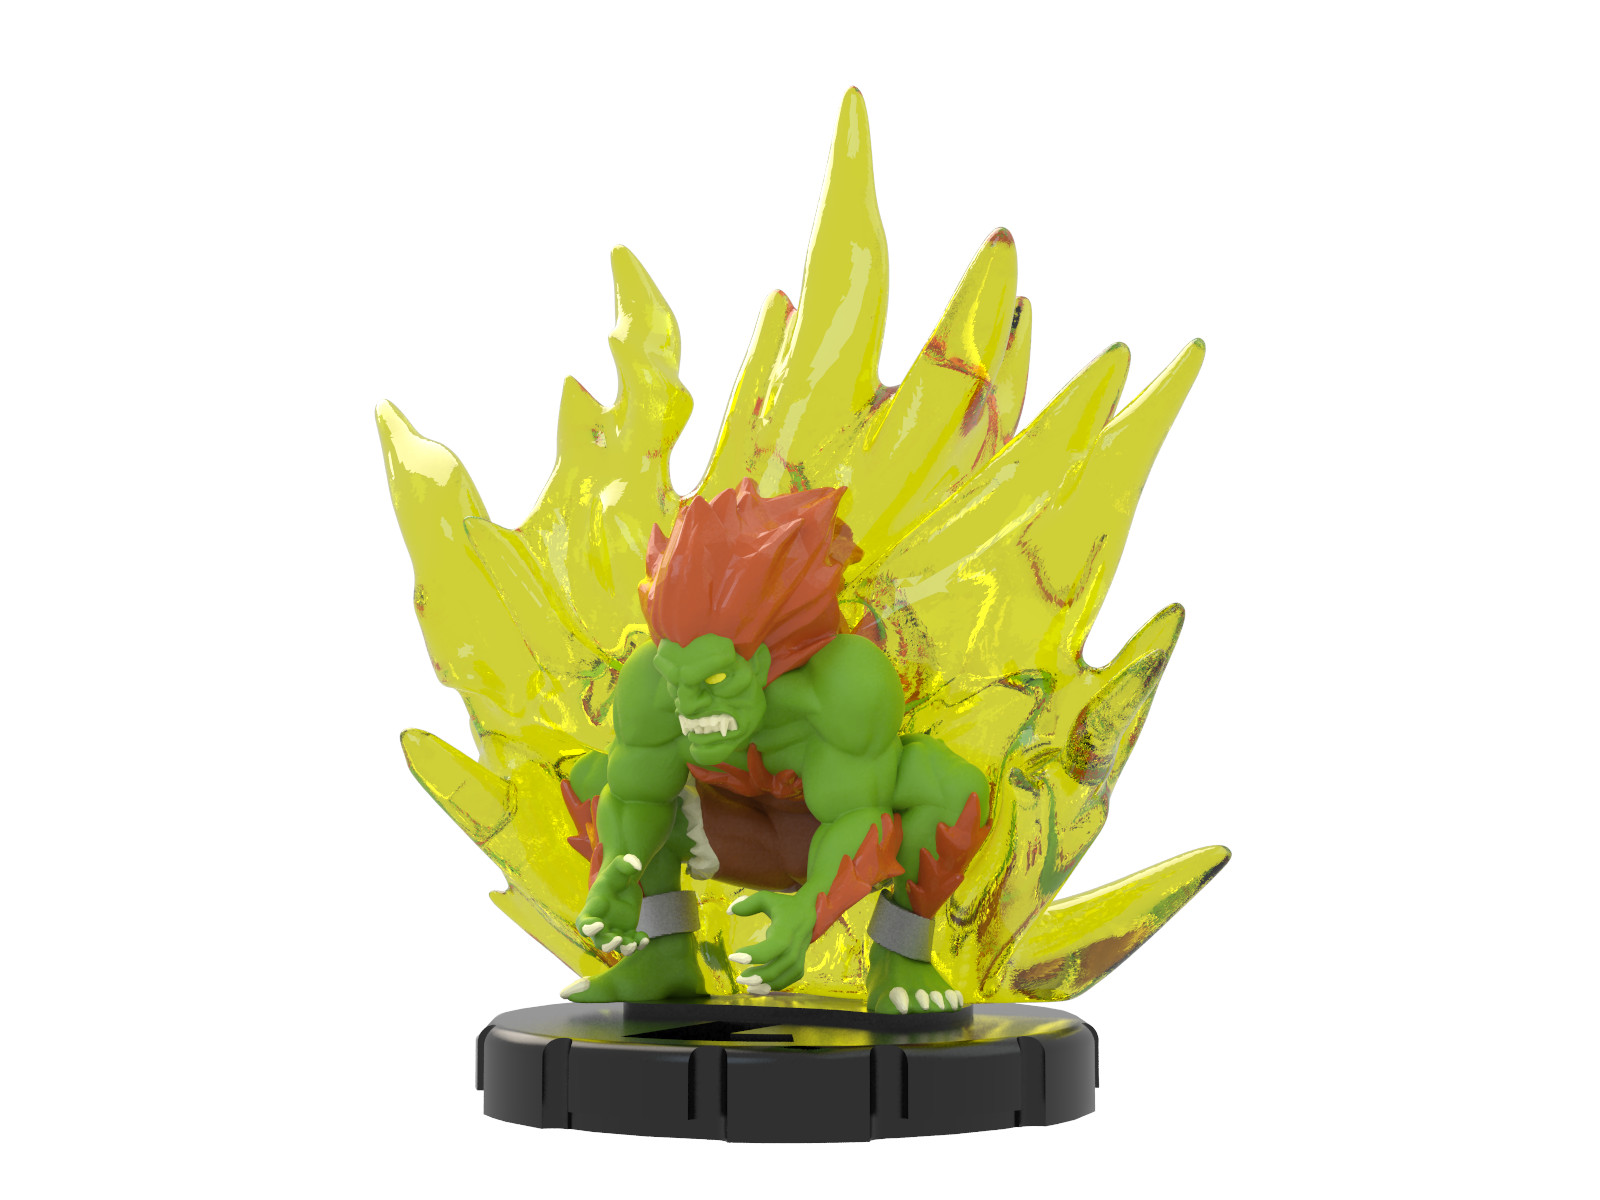 Ben misenar 002 blanka re 1